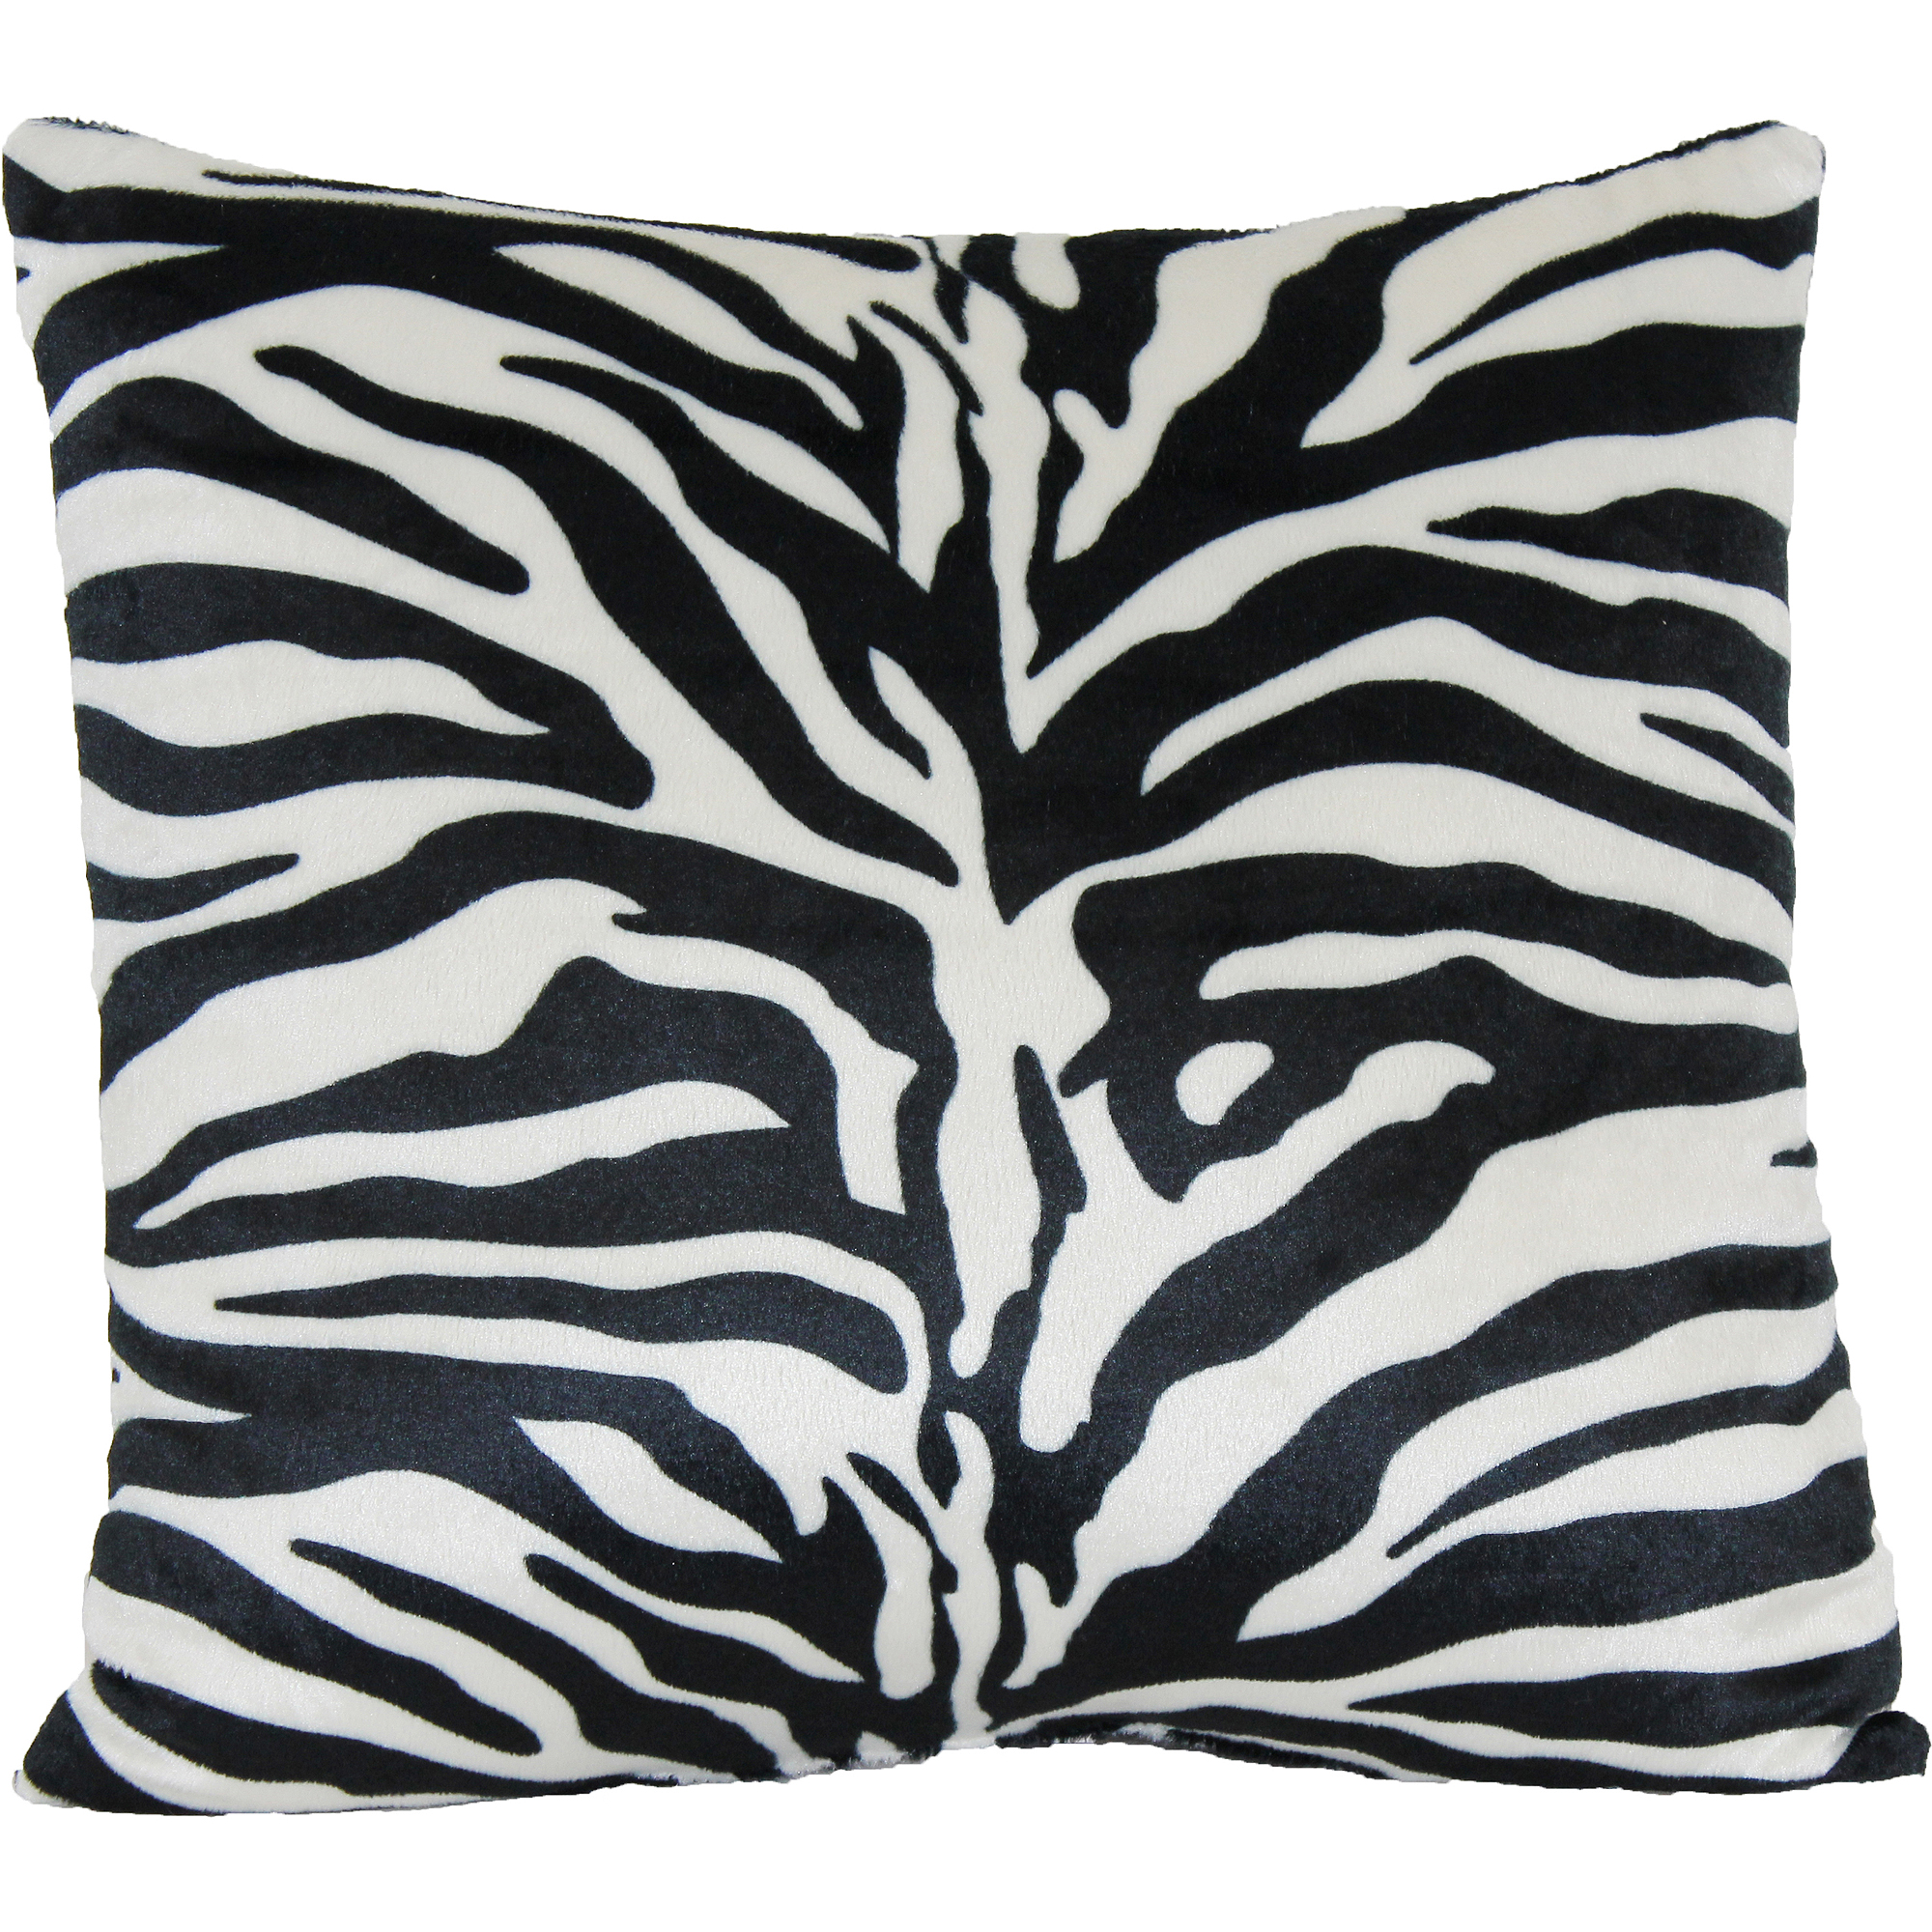 Zebra Print Decorative Pillow